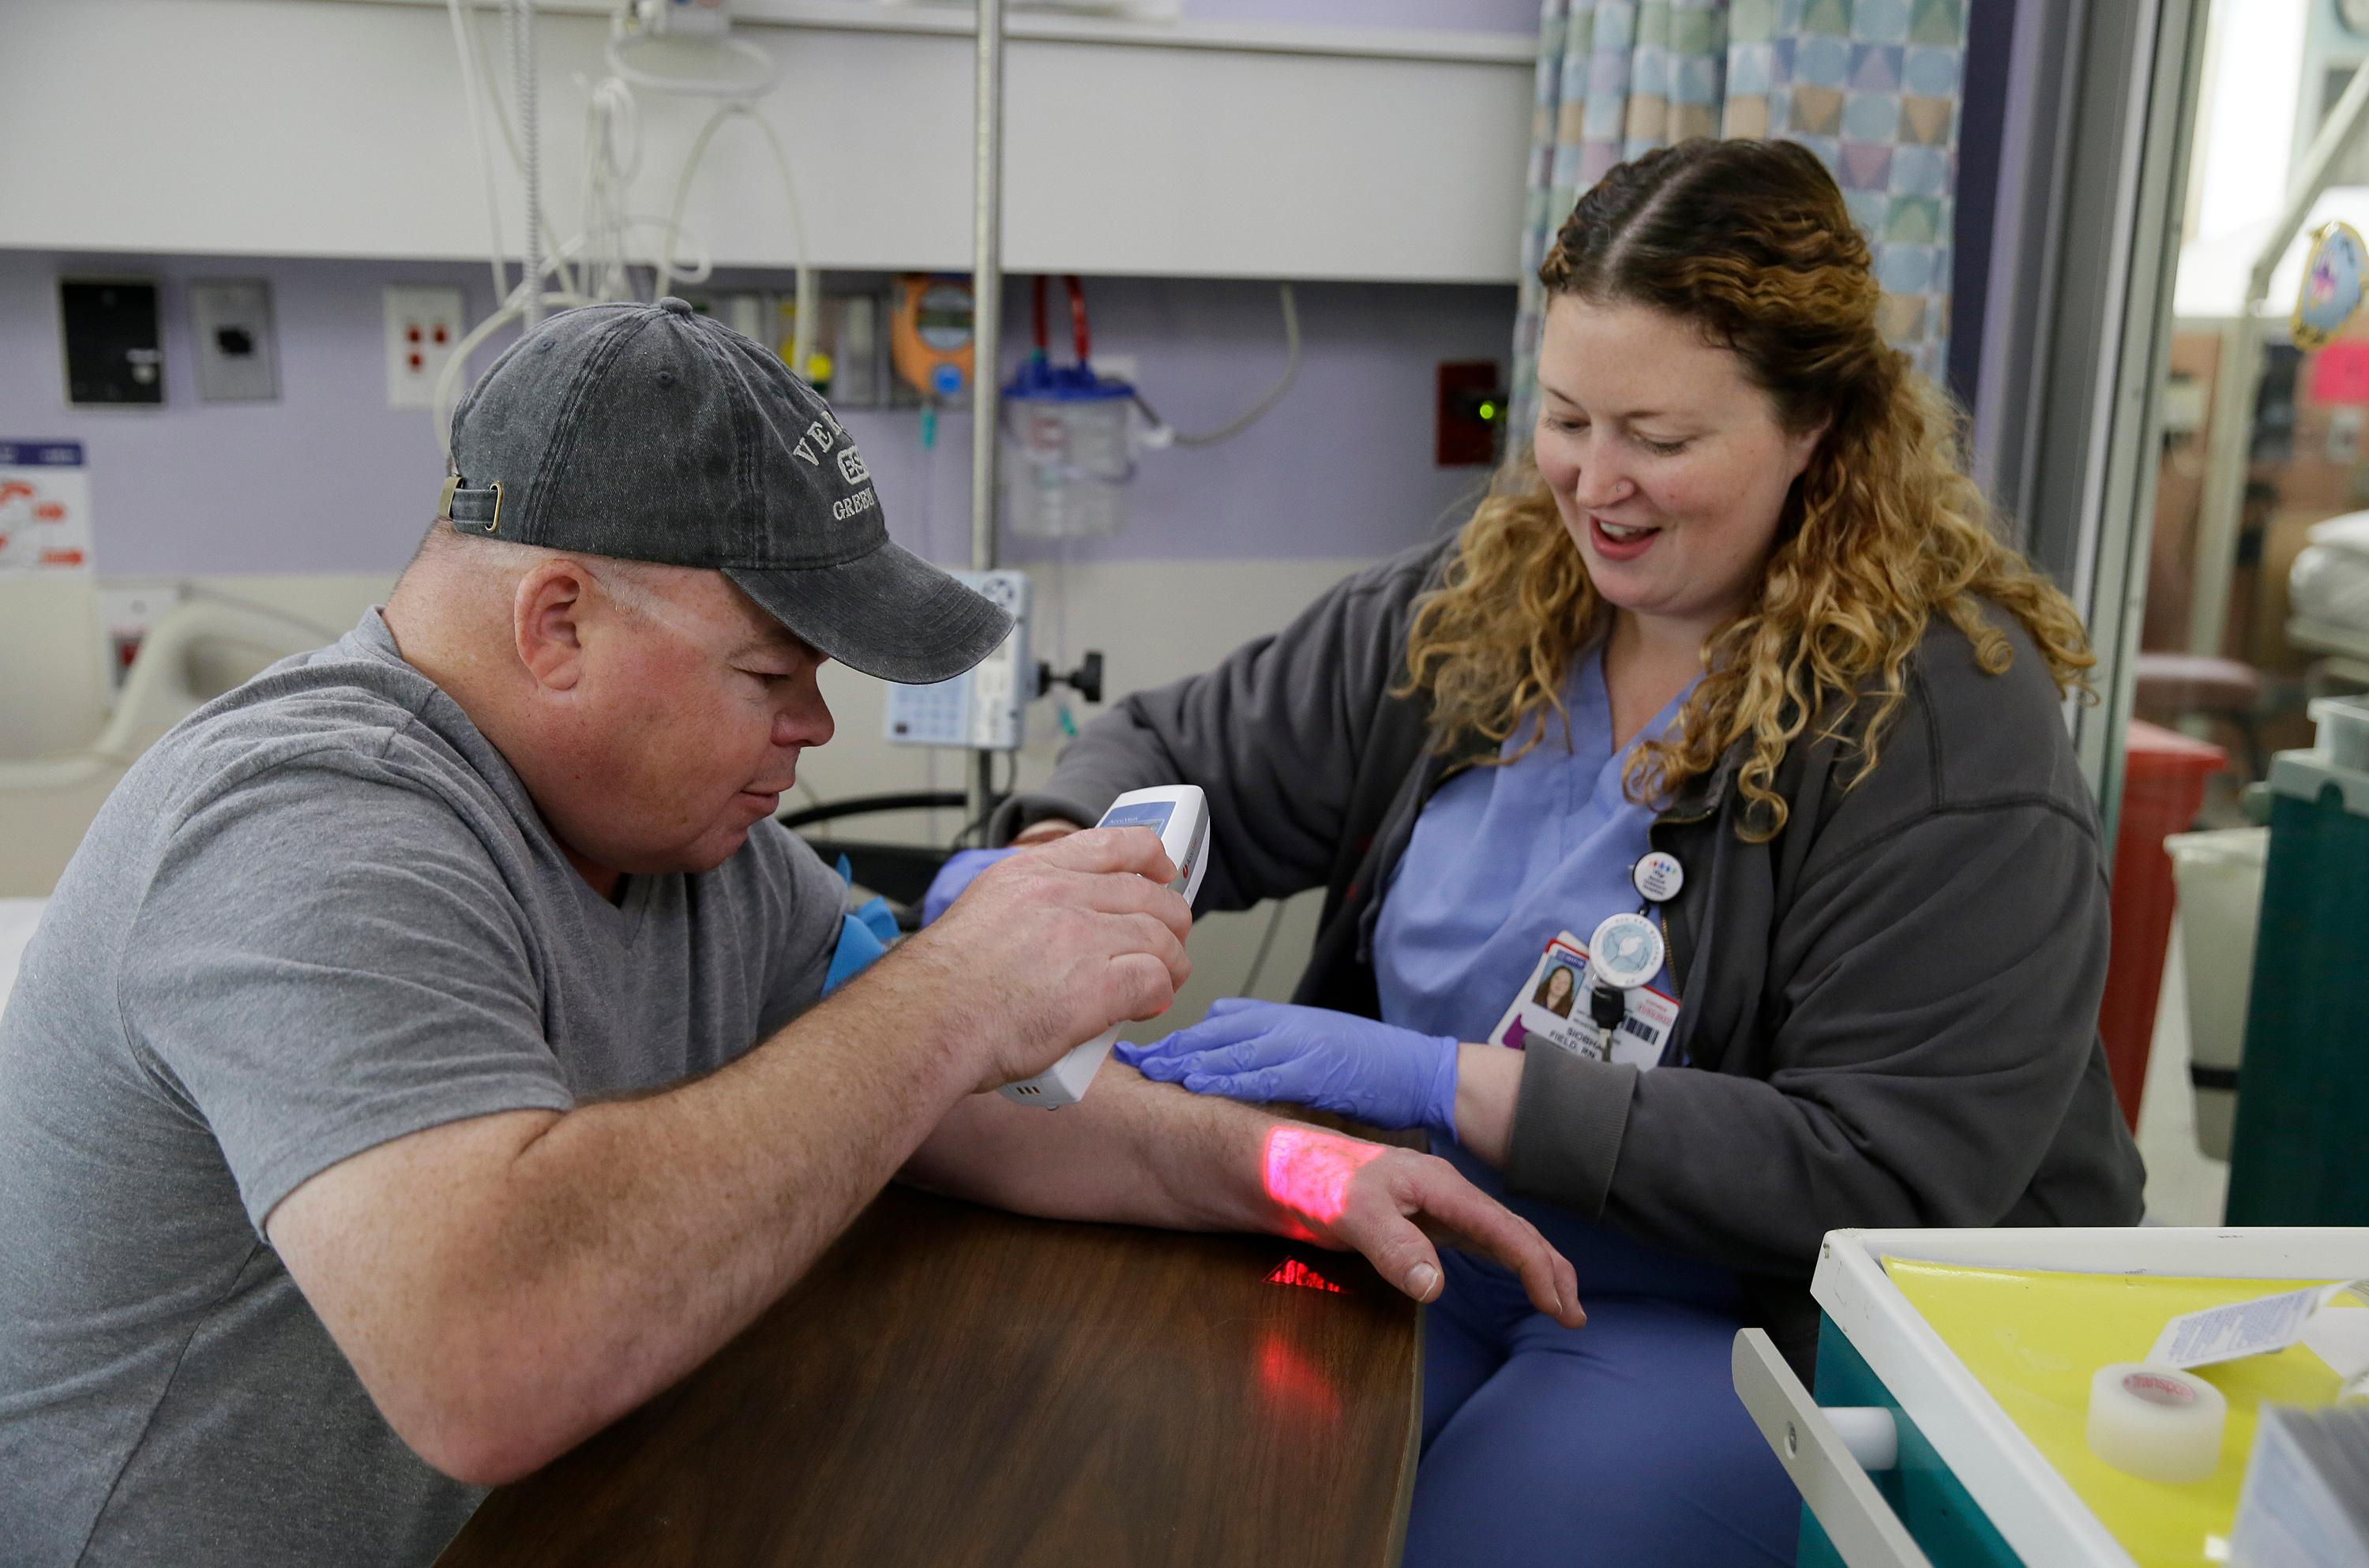 Brian Madeux, 44, uses an infrared device to look at his veins as nurse Siobhan Field prepares an IV line for the first human gene editing therapy for NPS, at the UCSF Benioff Children's Hospital Oakland in Oakland, Calif., on Monday, Nov. 6, 2017.  Madeux, who has a metabolic disease called Hunter syndrome, will receive billions of copies of a corrective gene and a genetic tool, through an IV,  to cut his DNA in a precise spot. (AP Photo/Eric Risberg)